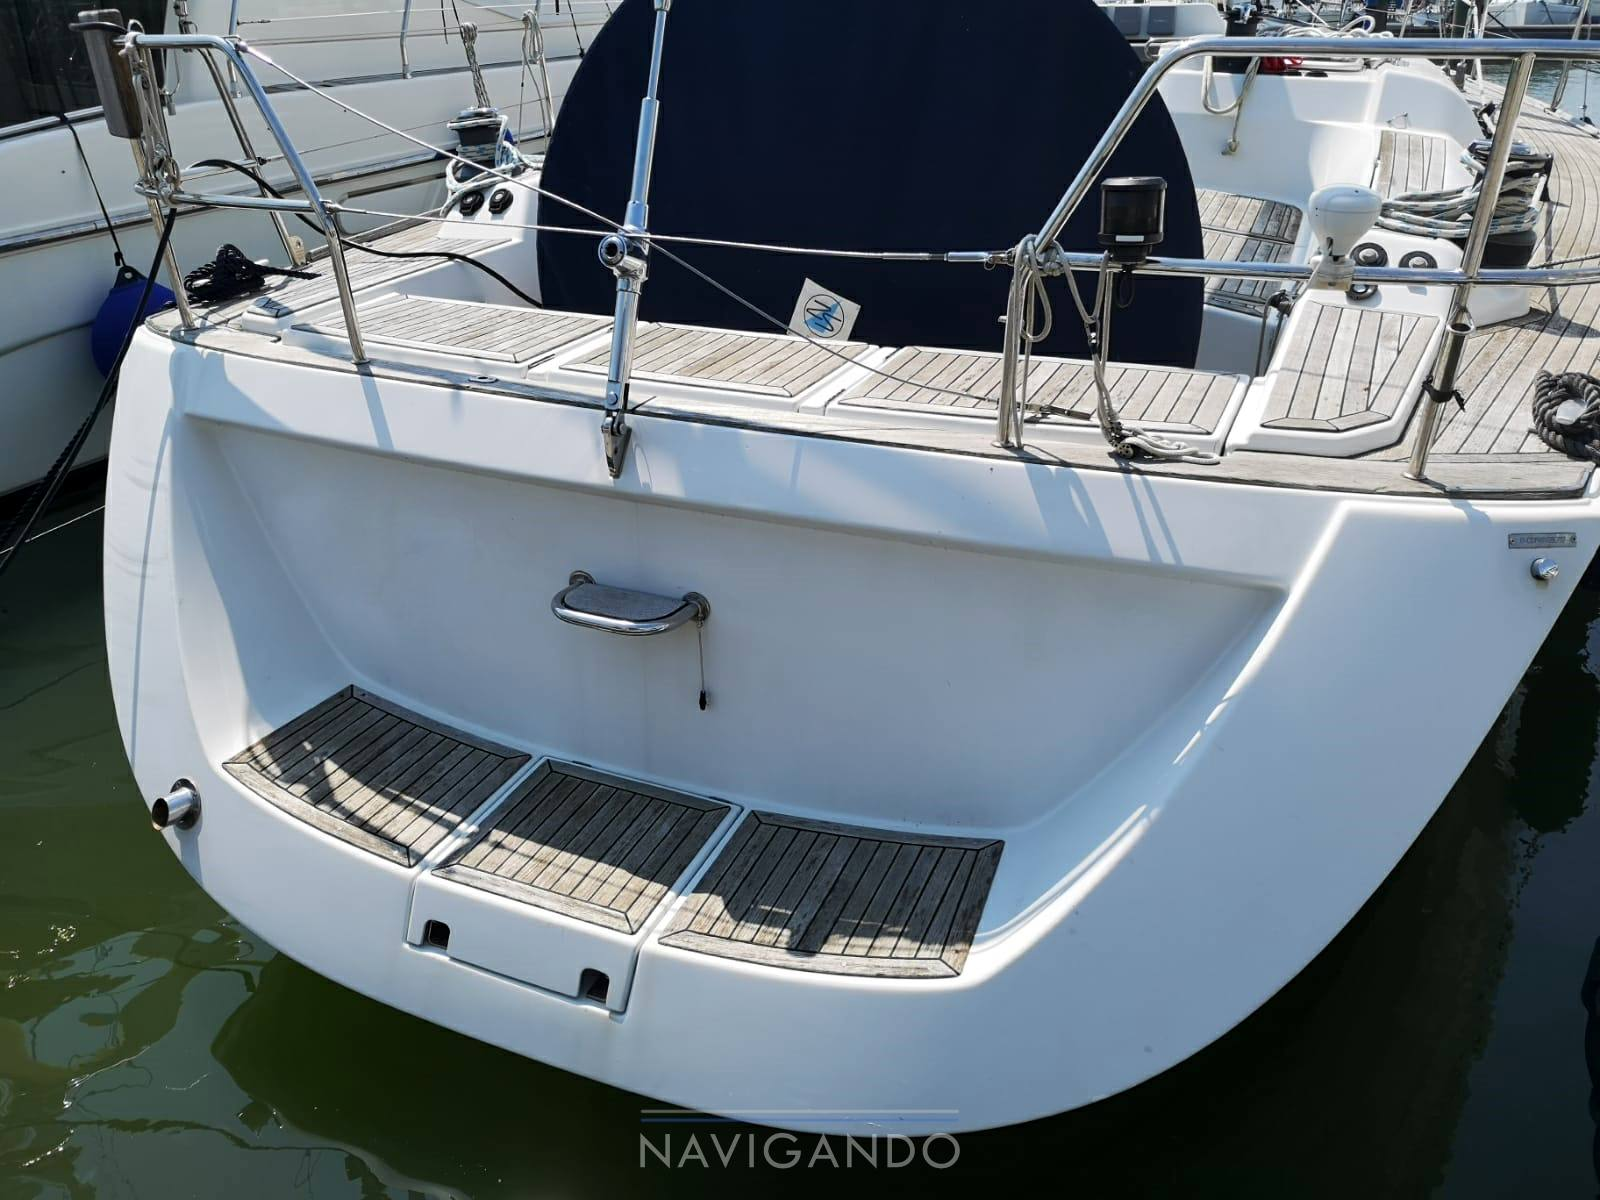 Del Pardo Grand soleil 45 Sailing boat used for sale